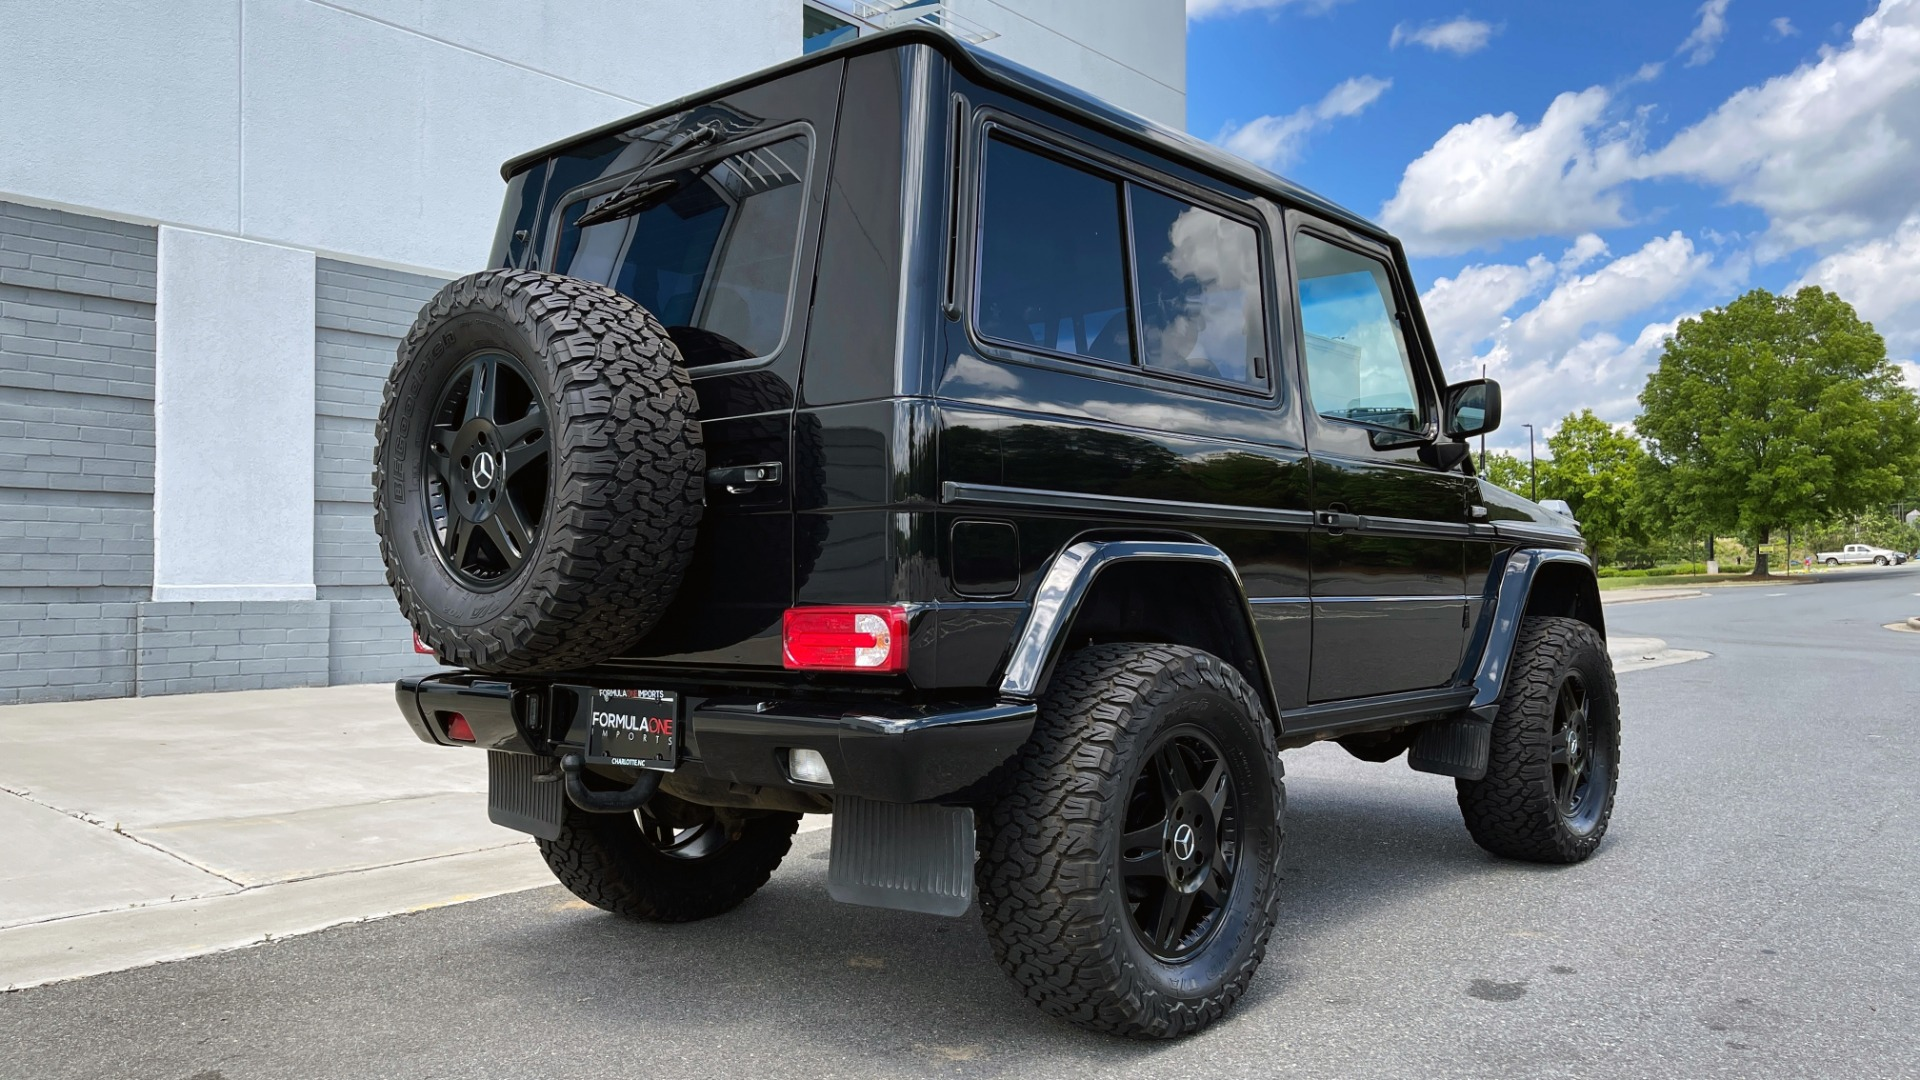 Used 1993 Mercedes-Benz 300GE 5-SPD MAN / 3.0L IN-LINE SIX 168HP / 4X4 / RARE - RUNS GREAT! for sale $69,999 at Formula Imports in Charlotte NC 28227 2